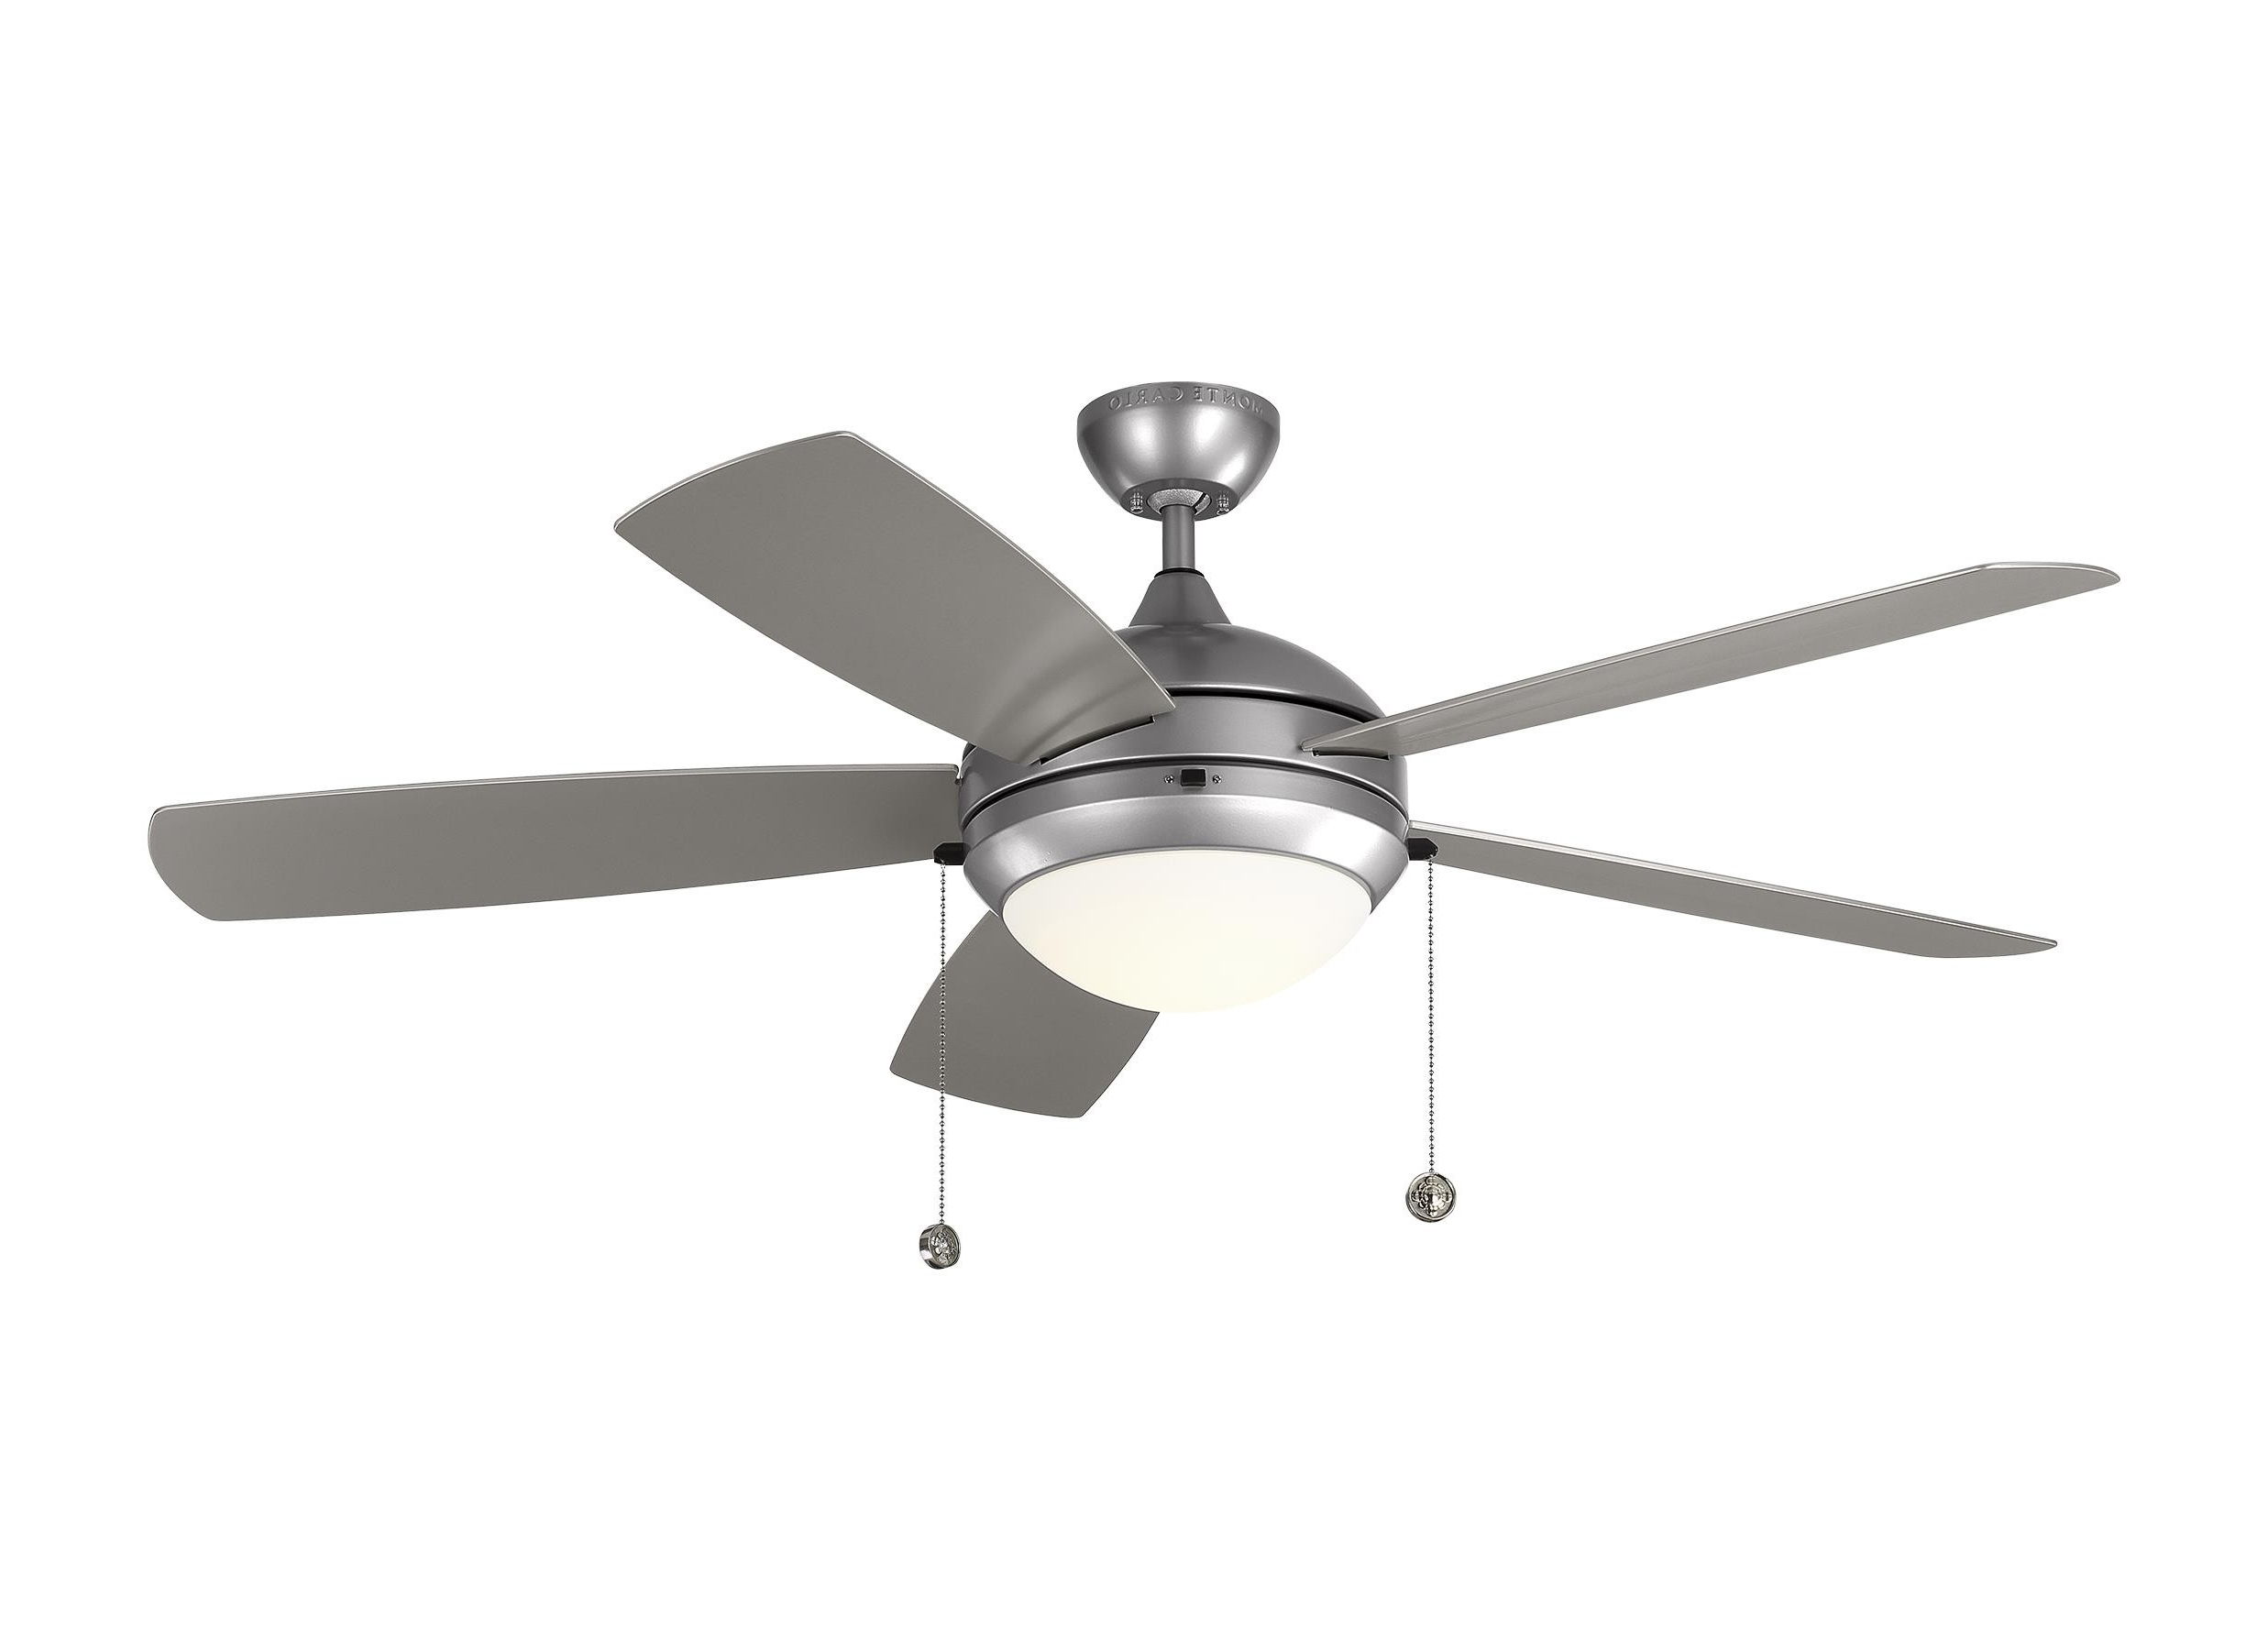 High Output Outdoor Ceiling Fans Pertaining To Well Known Panet Lighting – Ceiling Fans (View 20 of 20)